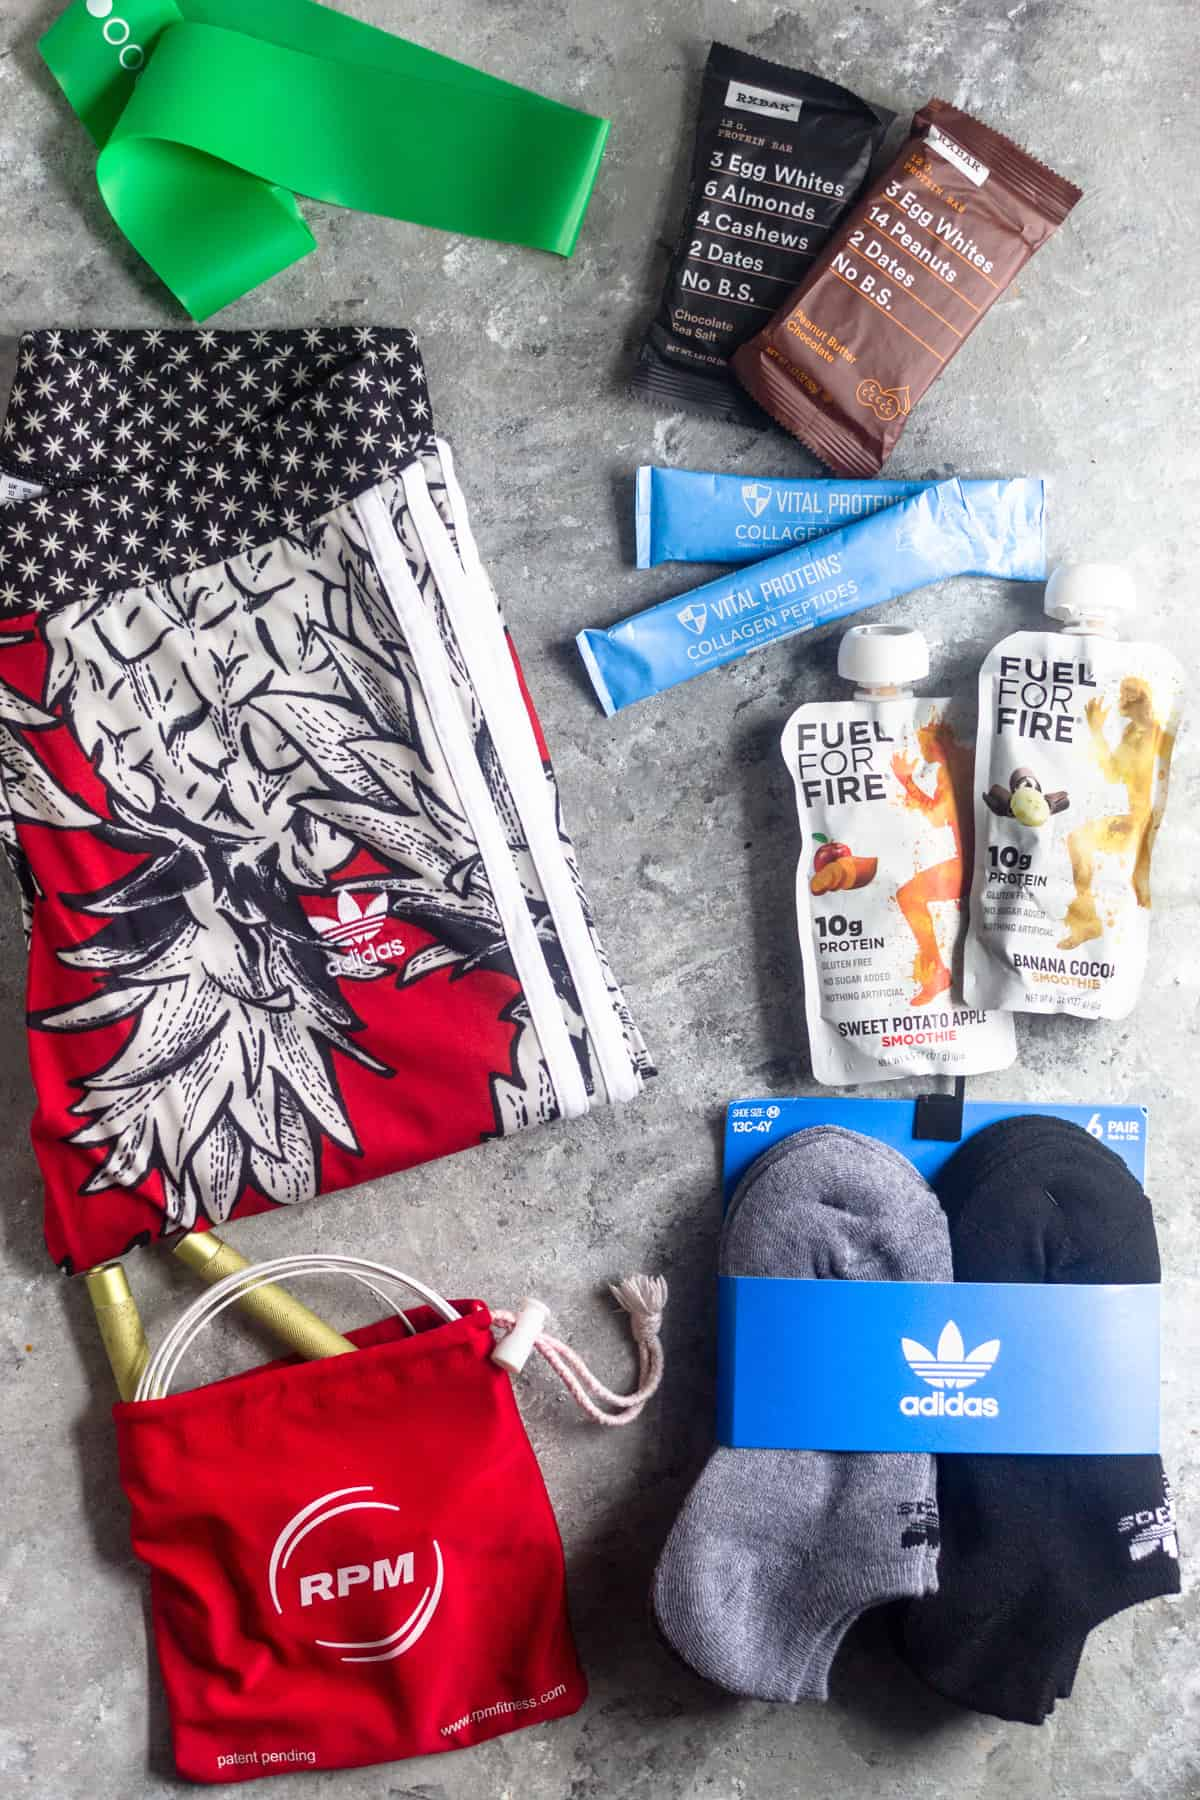 A bunch of items in a holiday gift guide for active women laid out on a grey surface. The items consist of leggings, snacks, socks, a jump rope, and a resistance band.